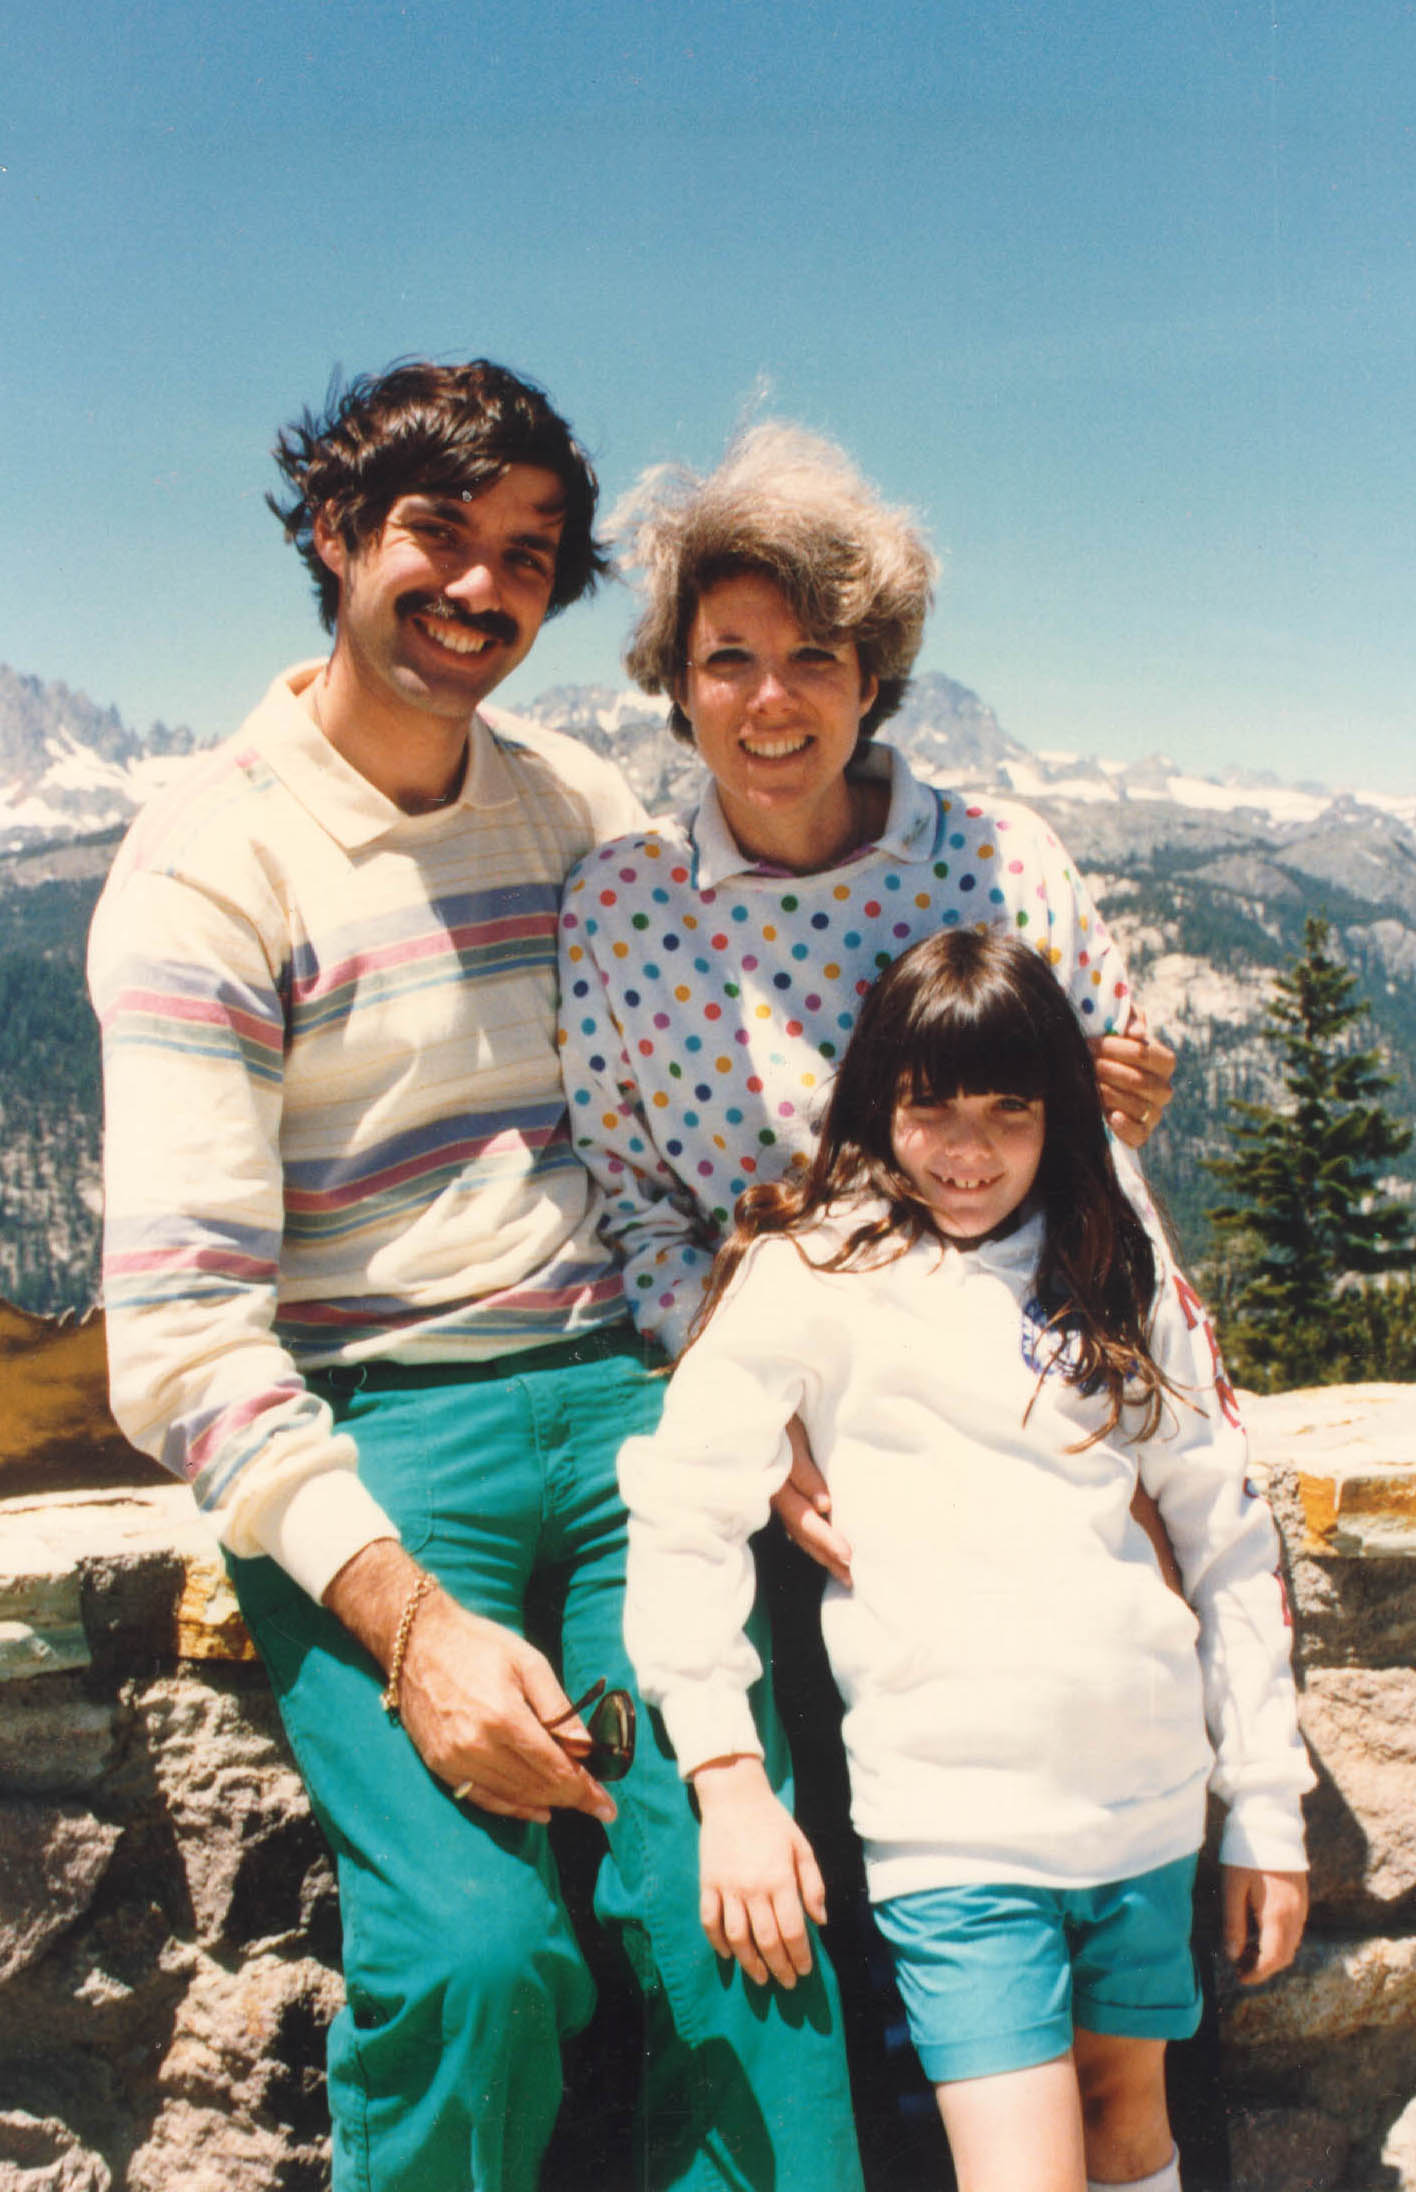 Blanka's daughter Shelly, son-in-law, and granddaughter Alexis Danielle on vacation.